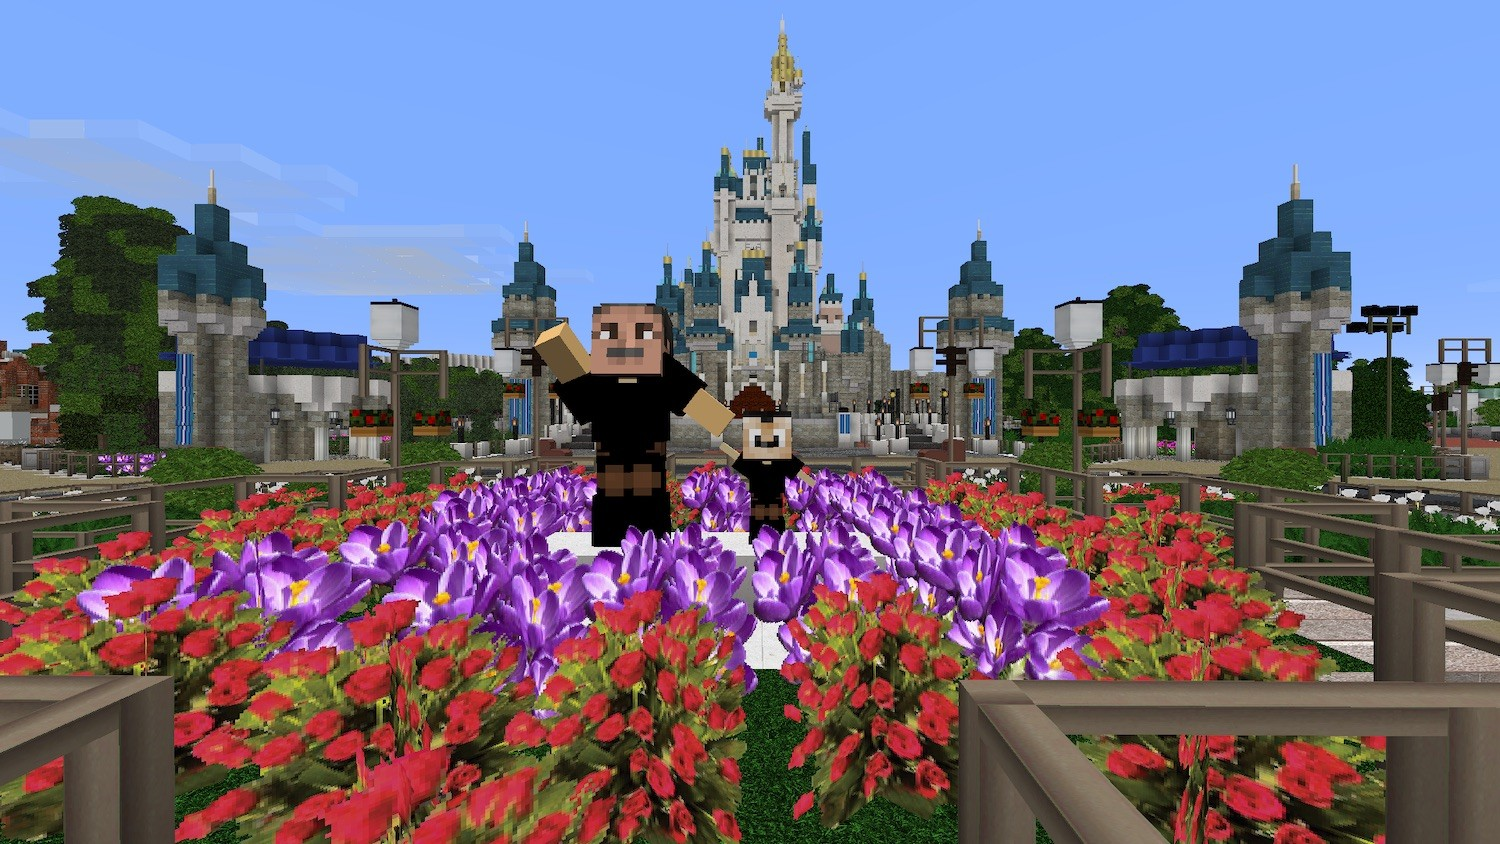 Minecraft And Disney World Collide In Imaginears Club A High Tech